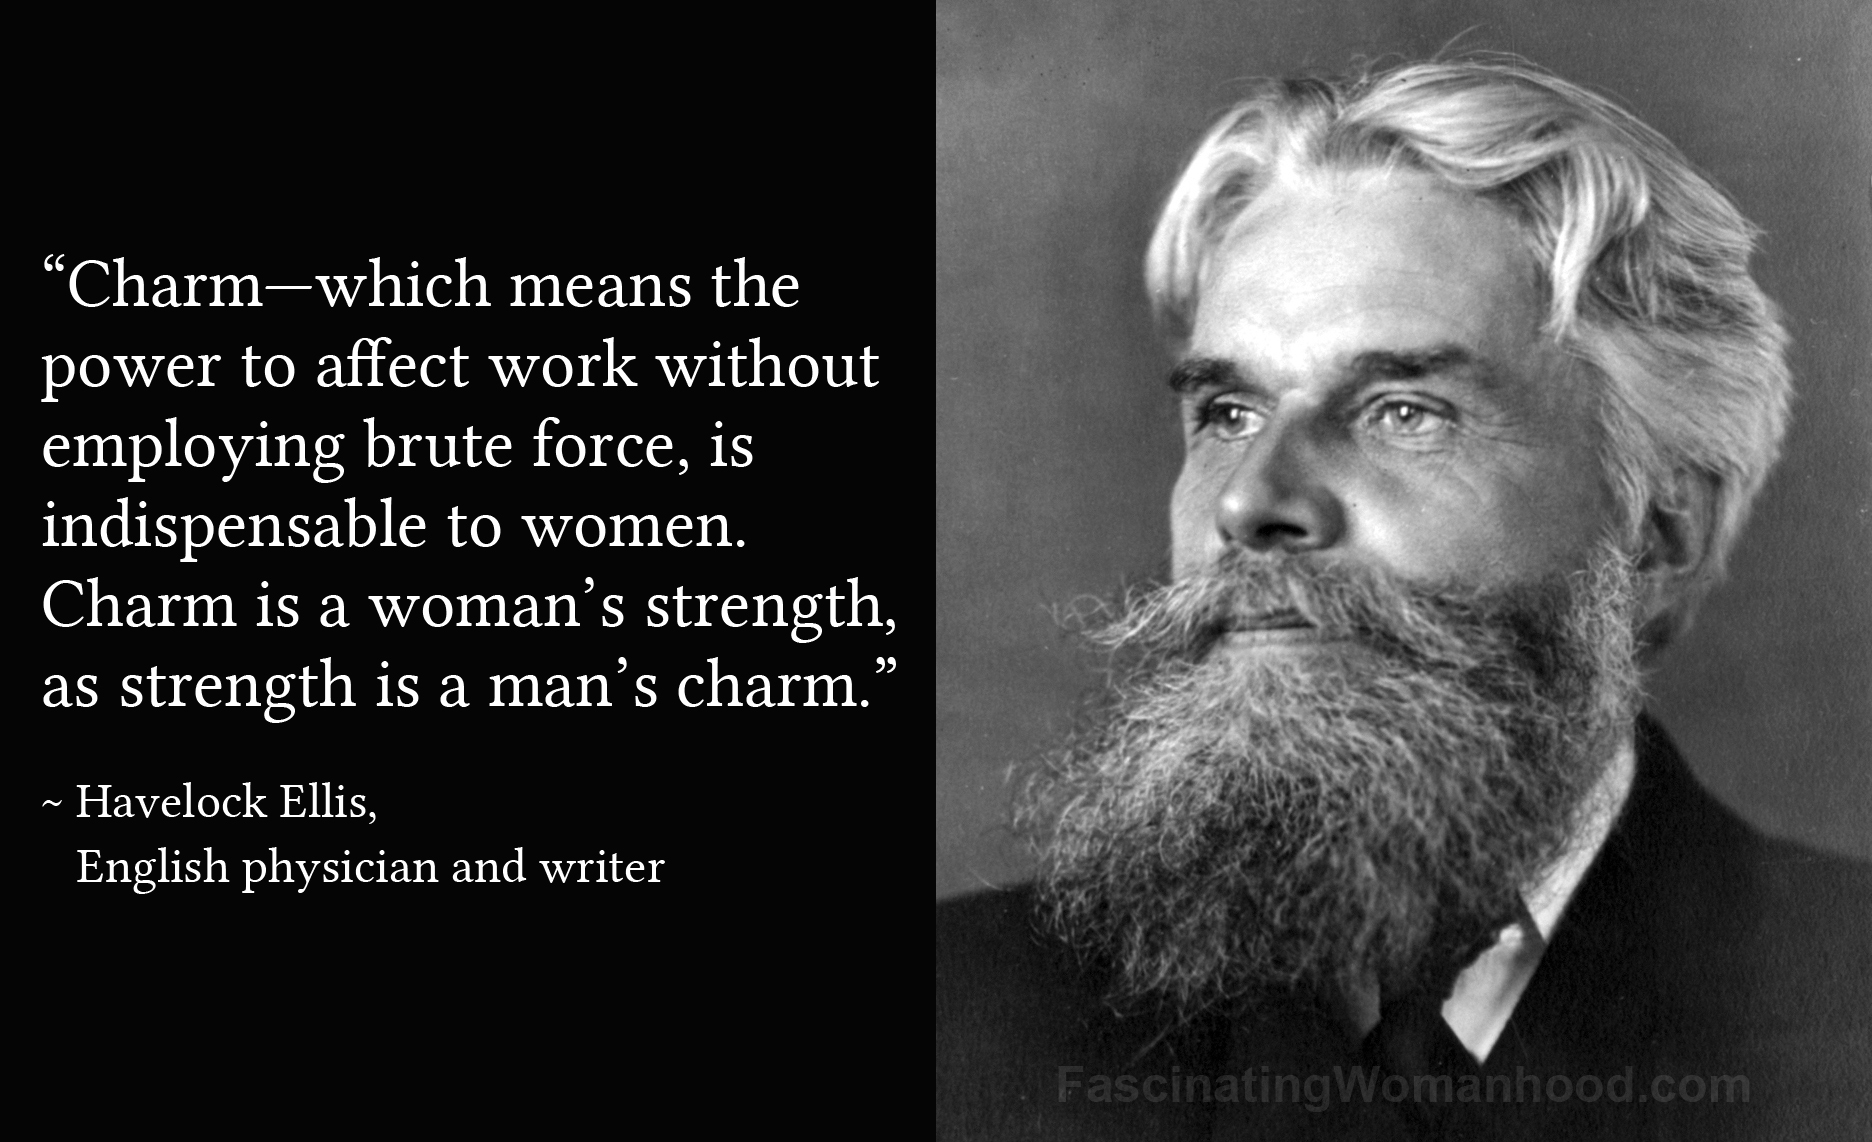 A Quote by Havelock Ellis.jpg